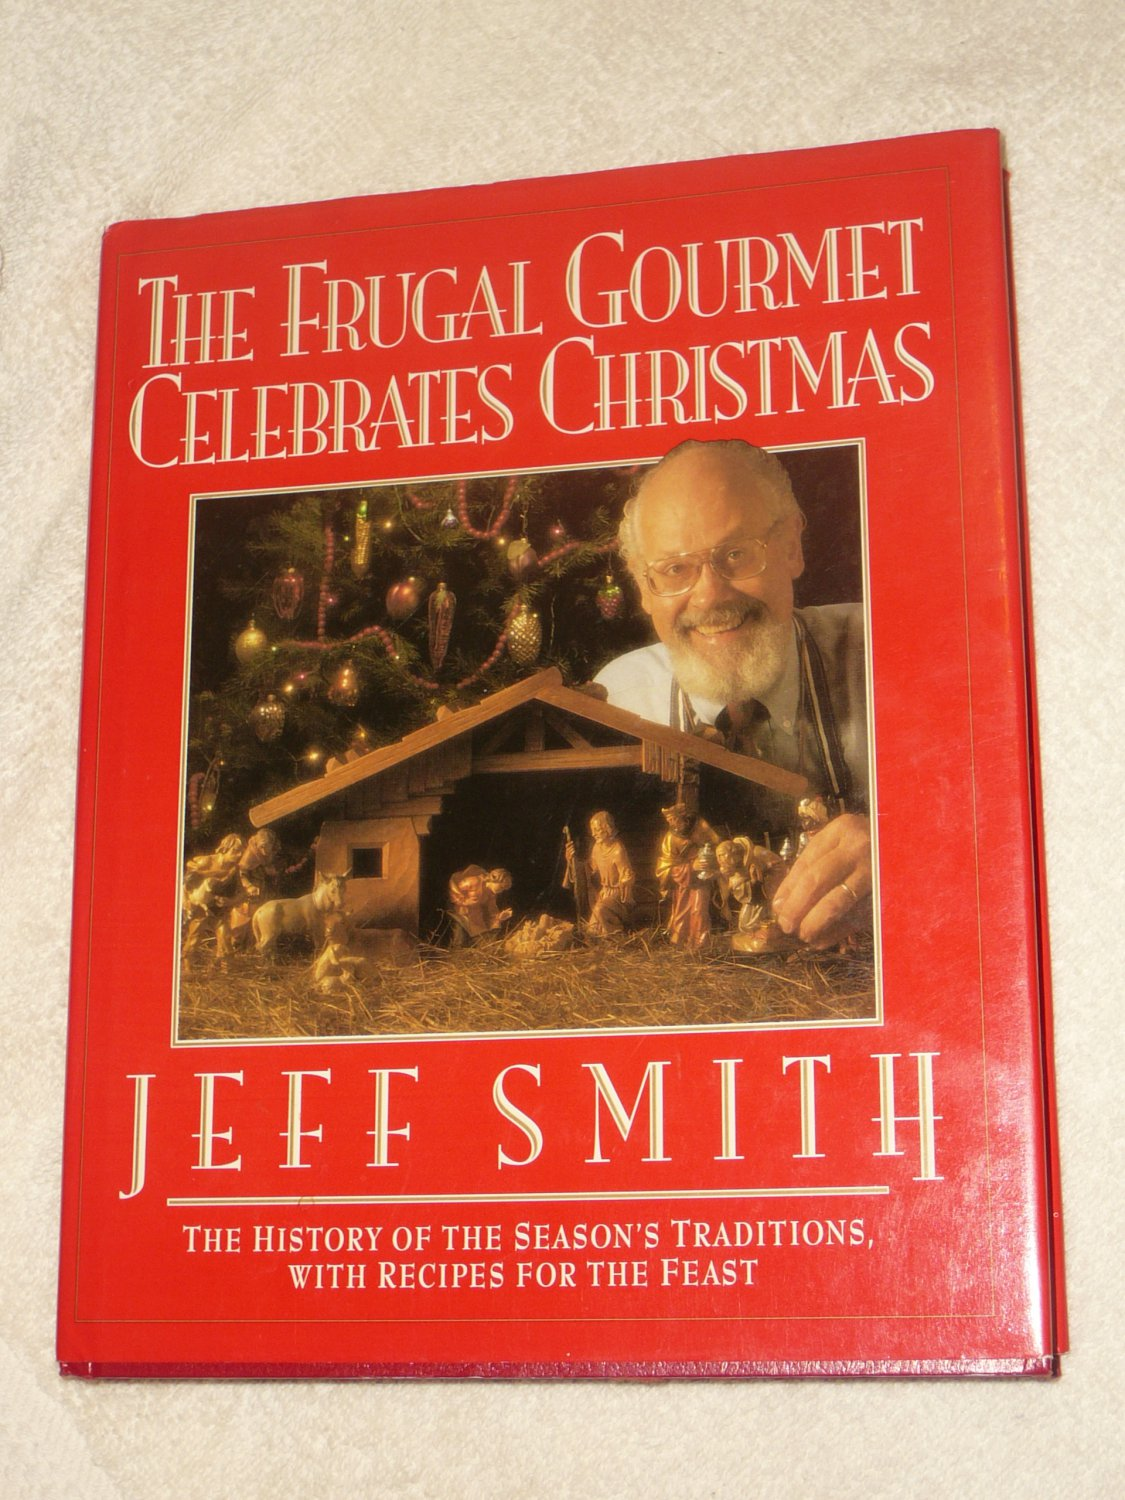 The Frugal Gourmet Celebrates Christmas